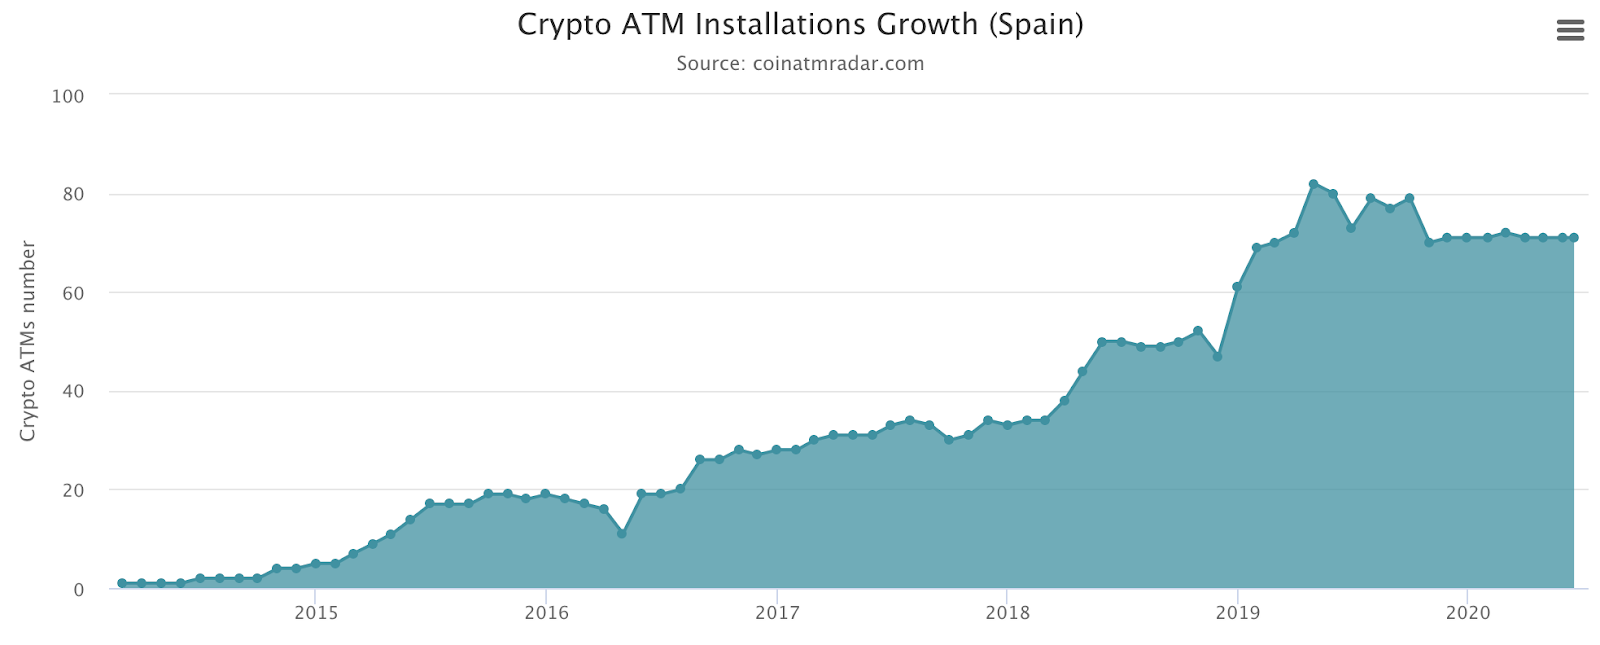 Ctypto ATM Installations Growth (Spain)